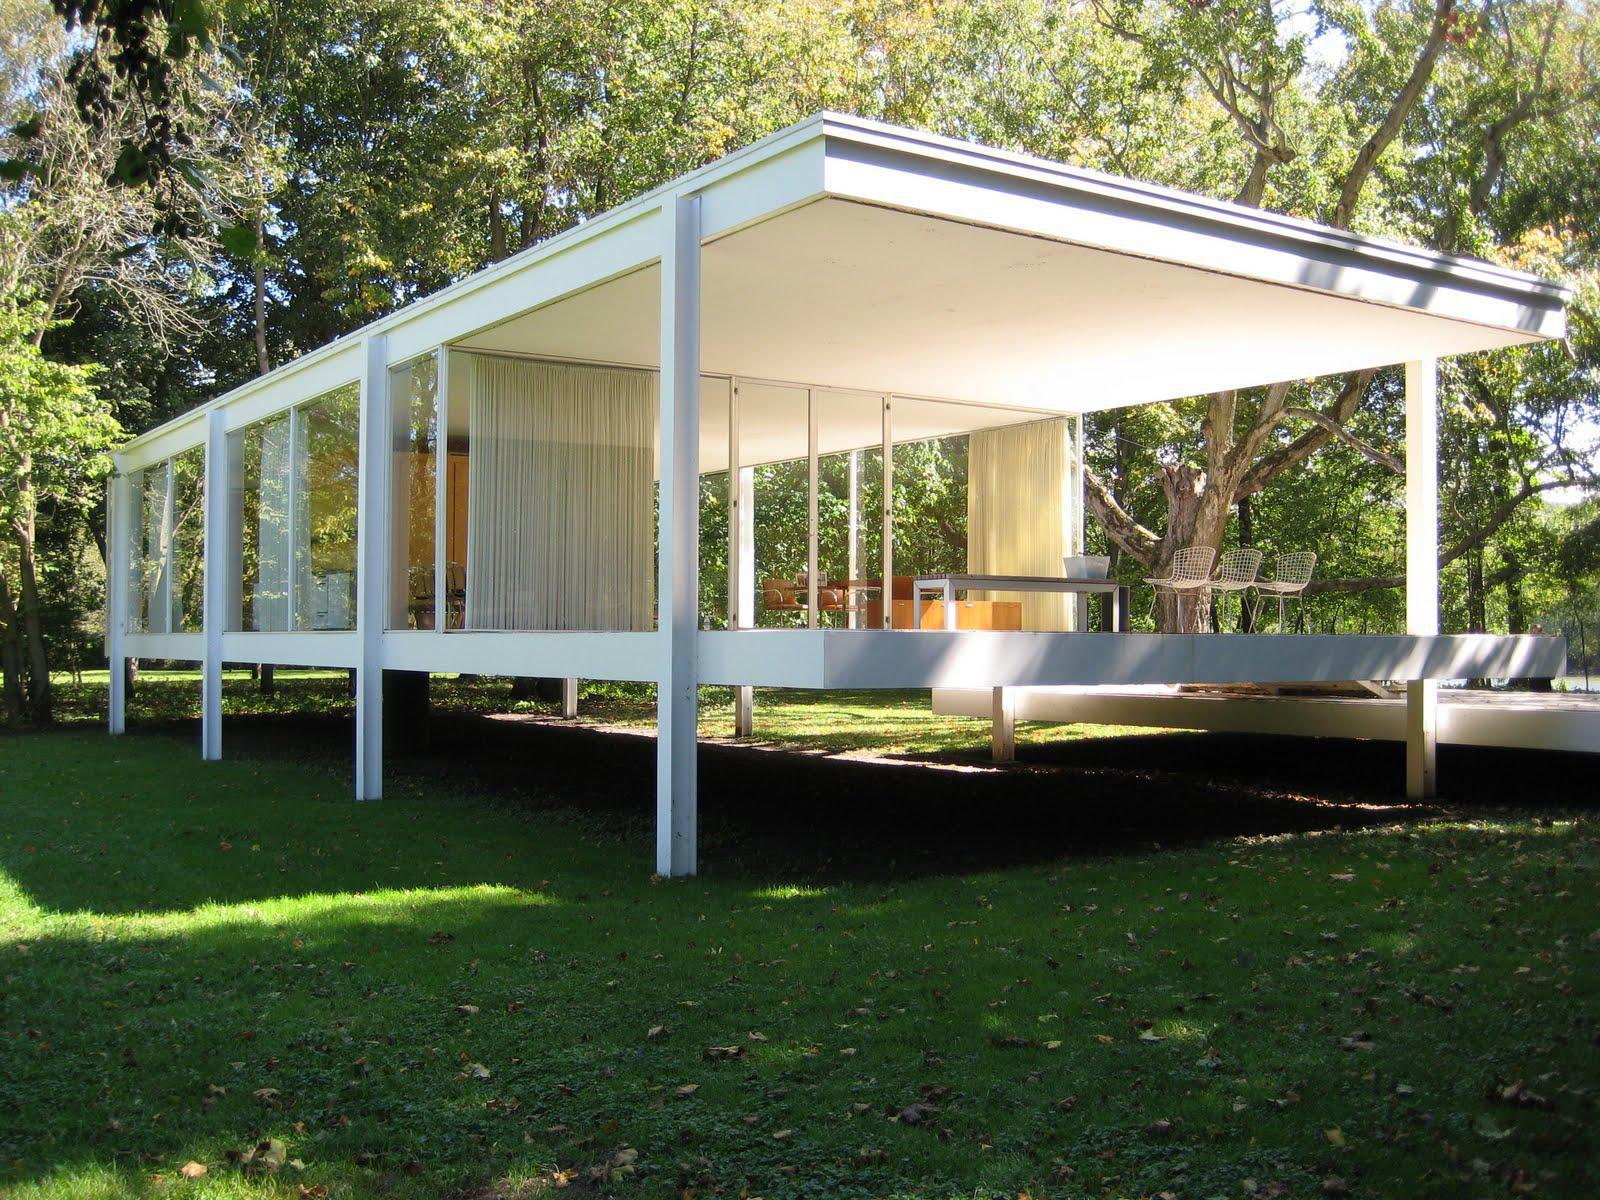 Creative people lab mies van der rohe il mercoled d autore for The farnsworth